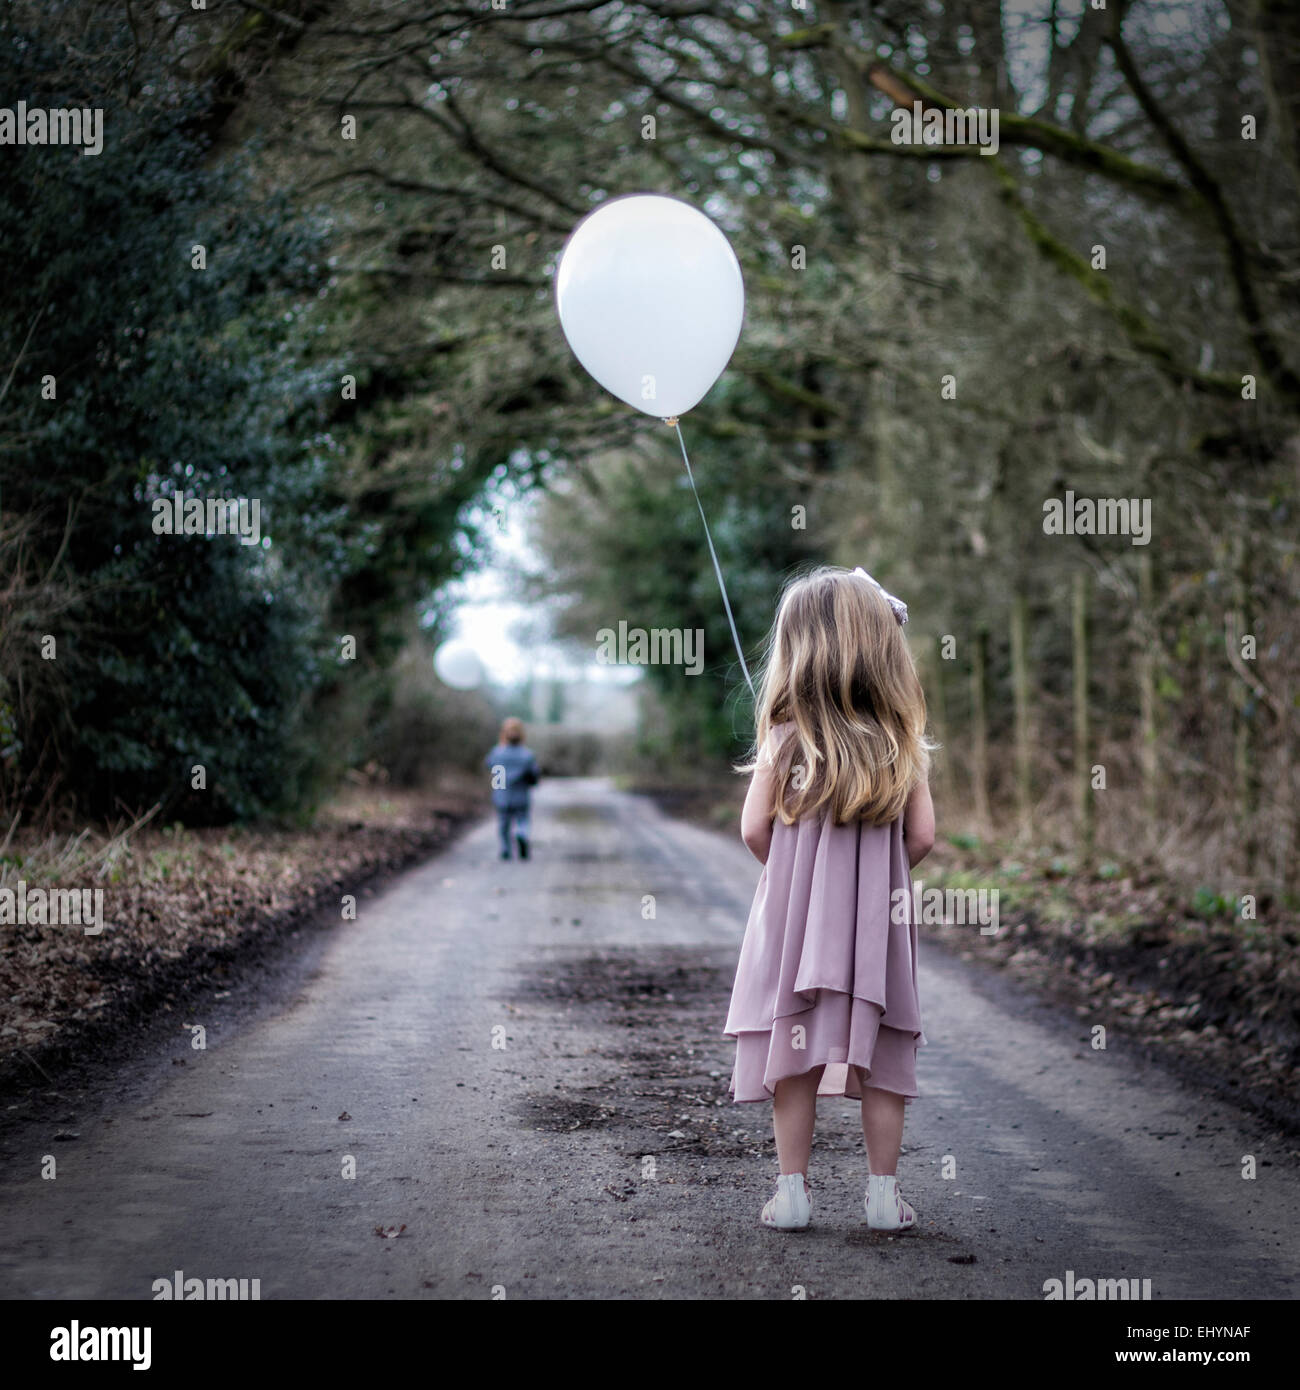 Rear view of girl holding a balloon looking at boy running away from her - Stock Image